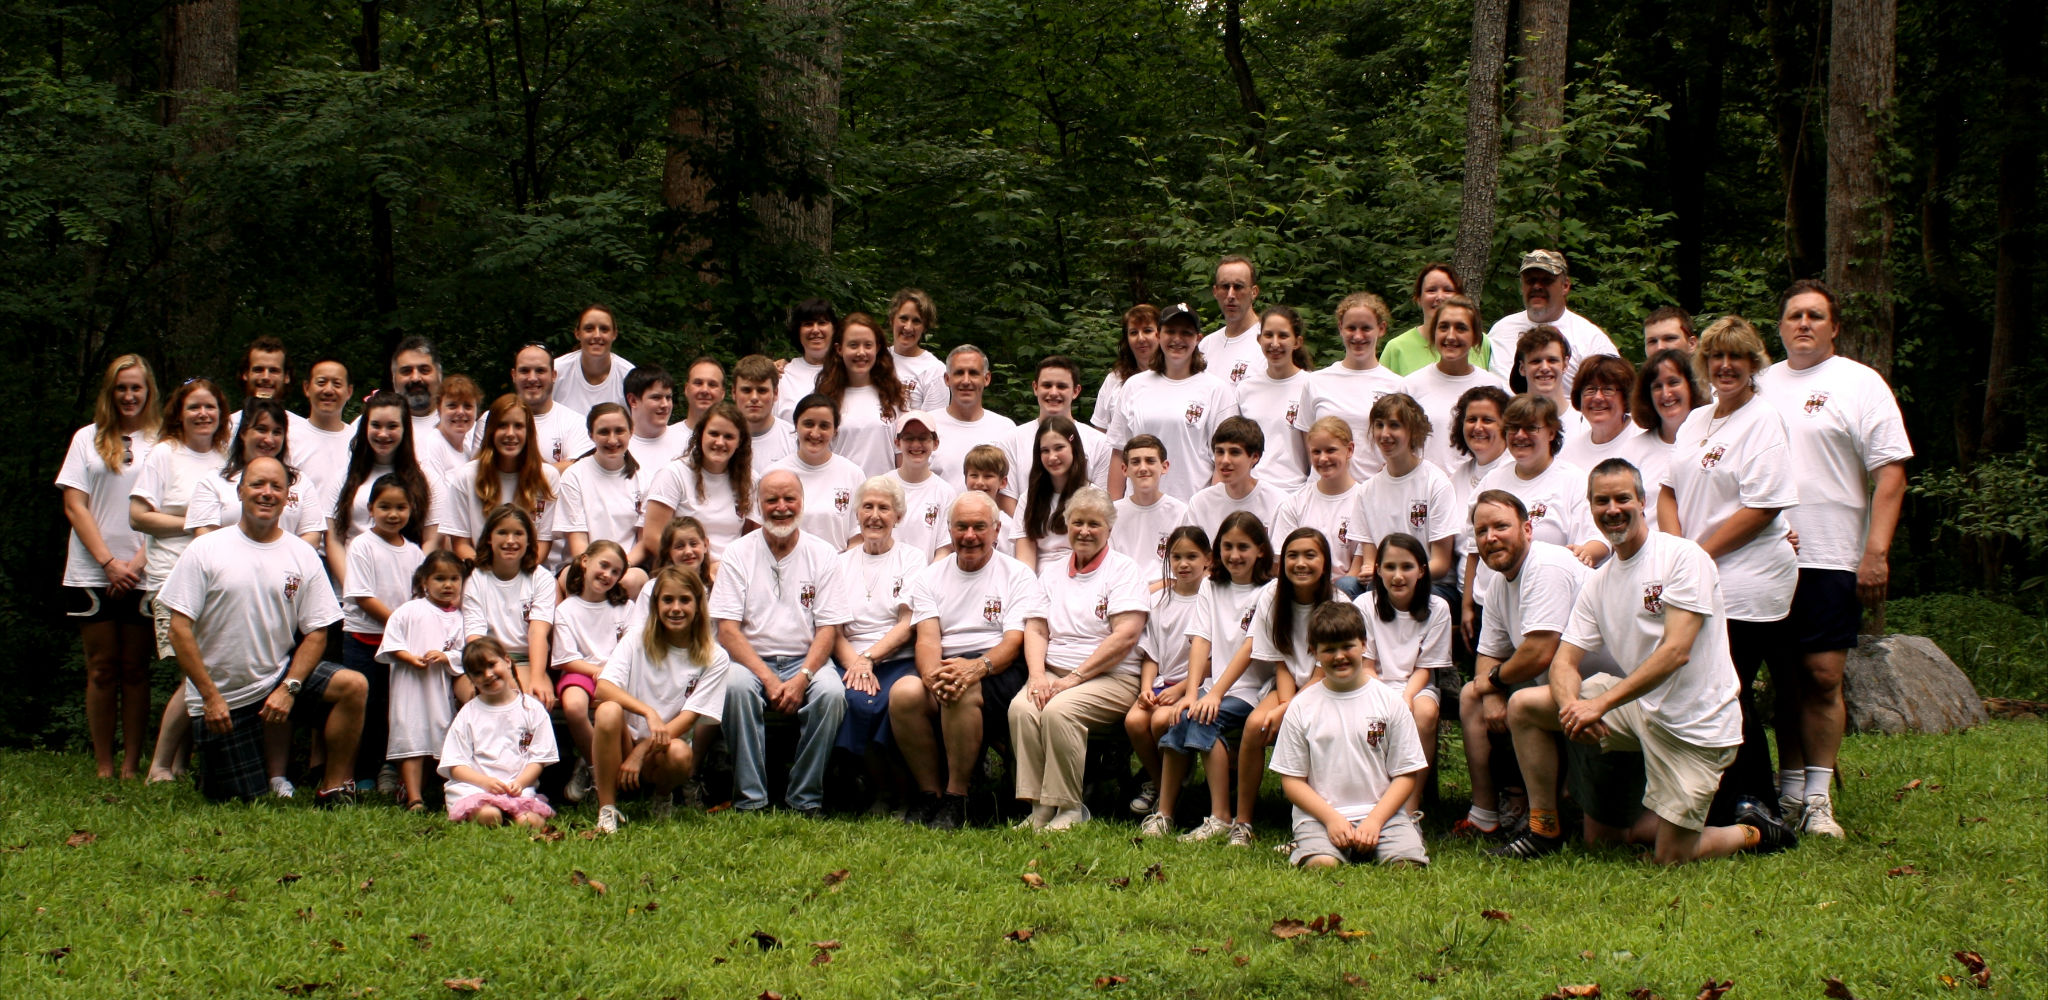 Dale, Gail, and Dennis, with their spouses and almost all of their children and grandchildren, on 17 July 2012